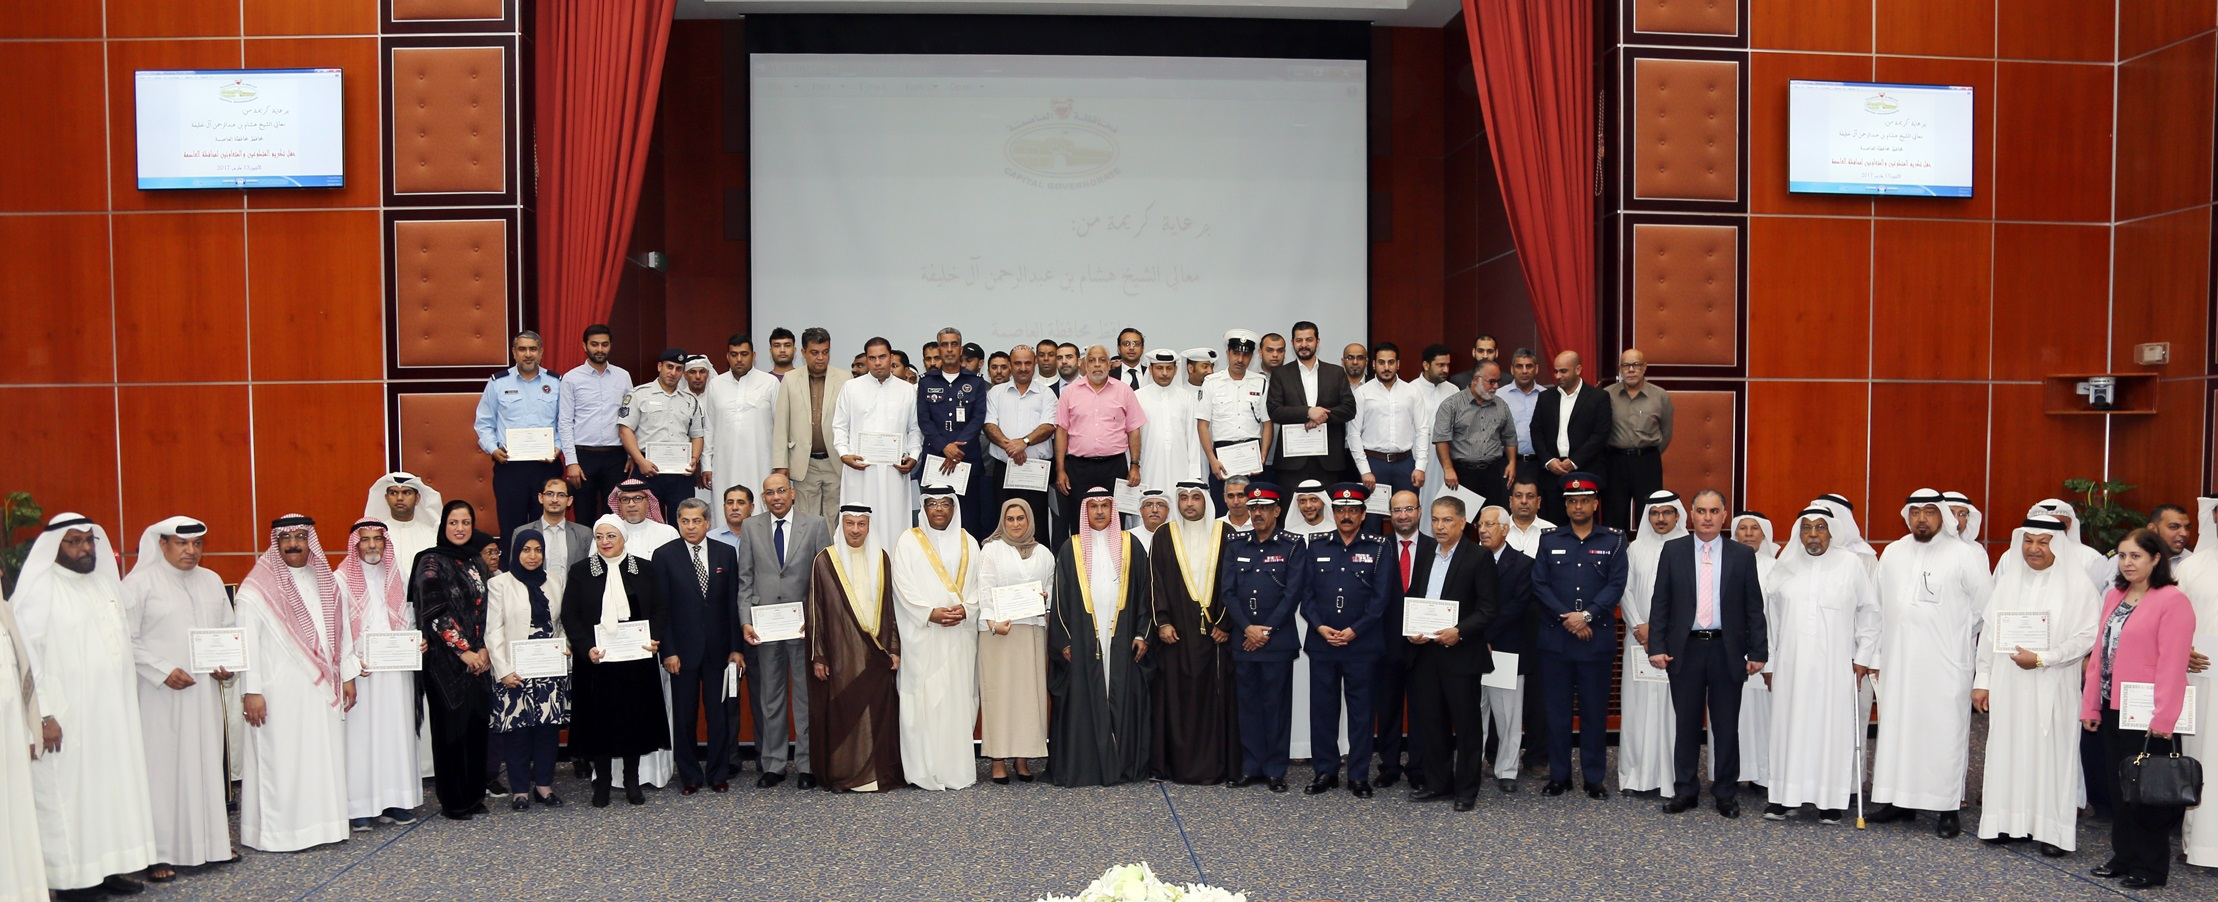 Hisham bin Abdul Rahman Honors 100 Volunteers for their Efforts in Serving the Capital's Community